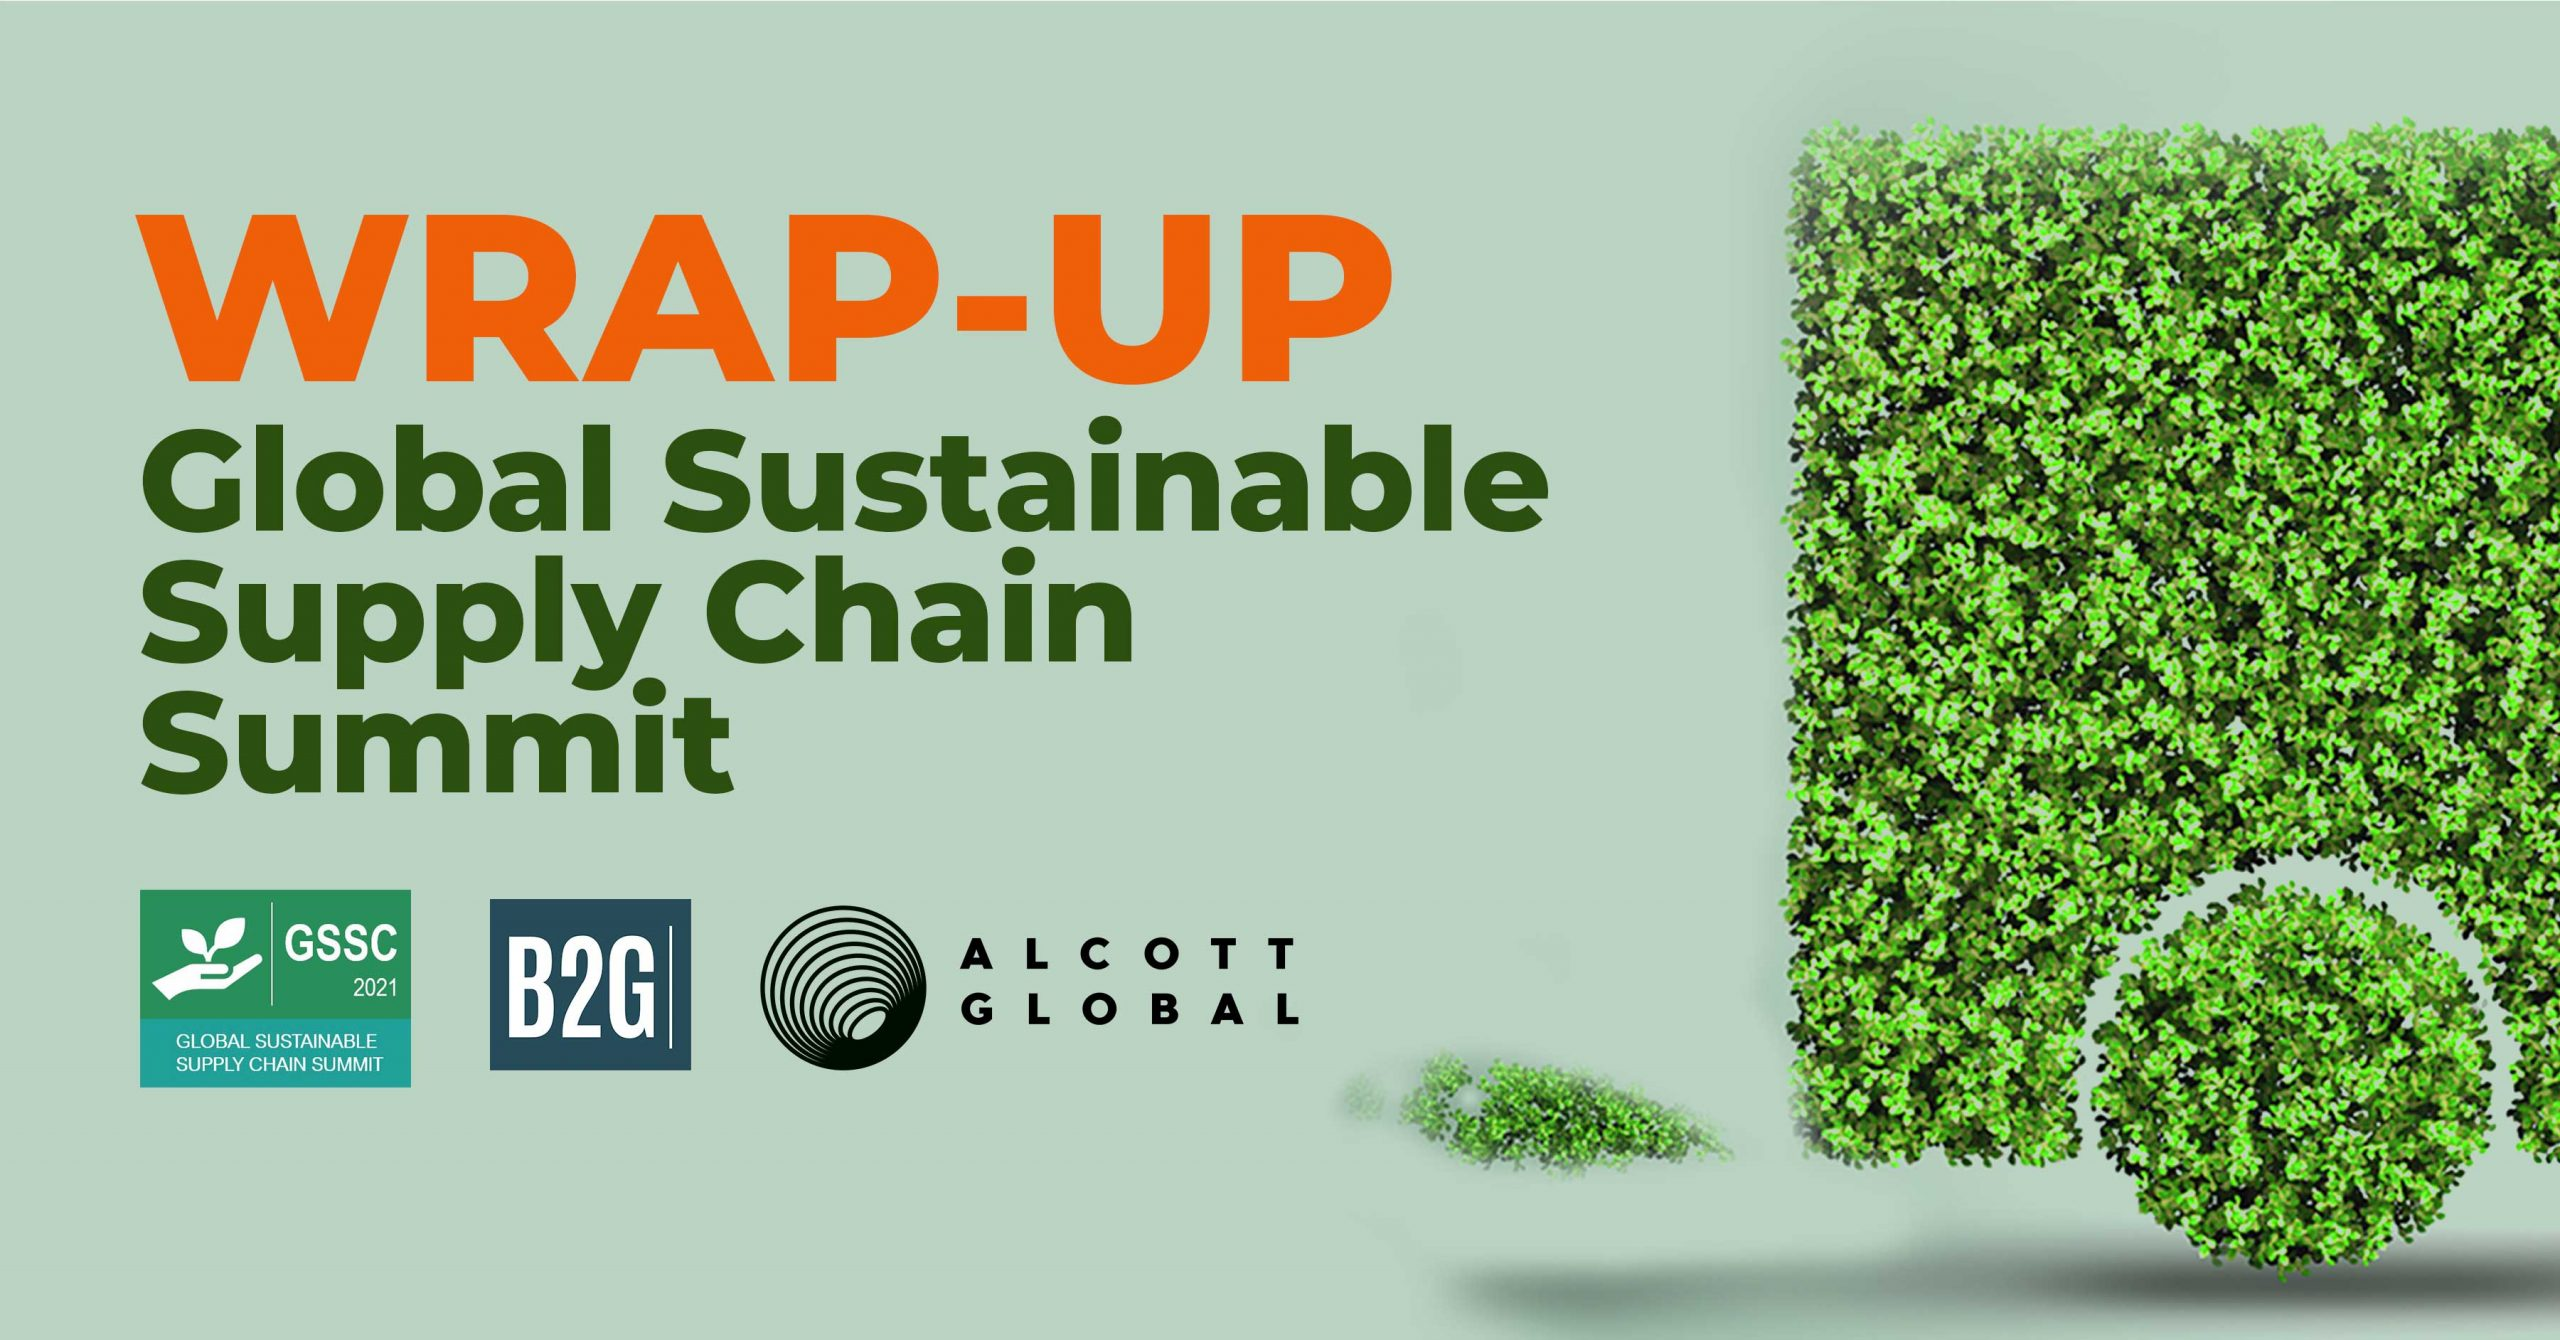 Global Sustainable Supply Chain Summit Wrap-up Featured Image